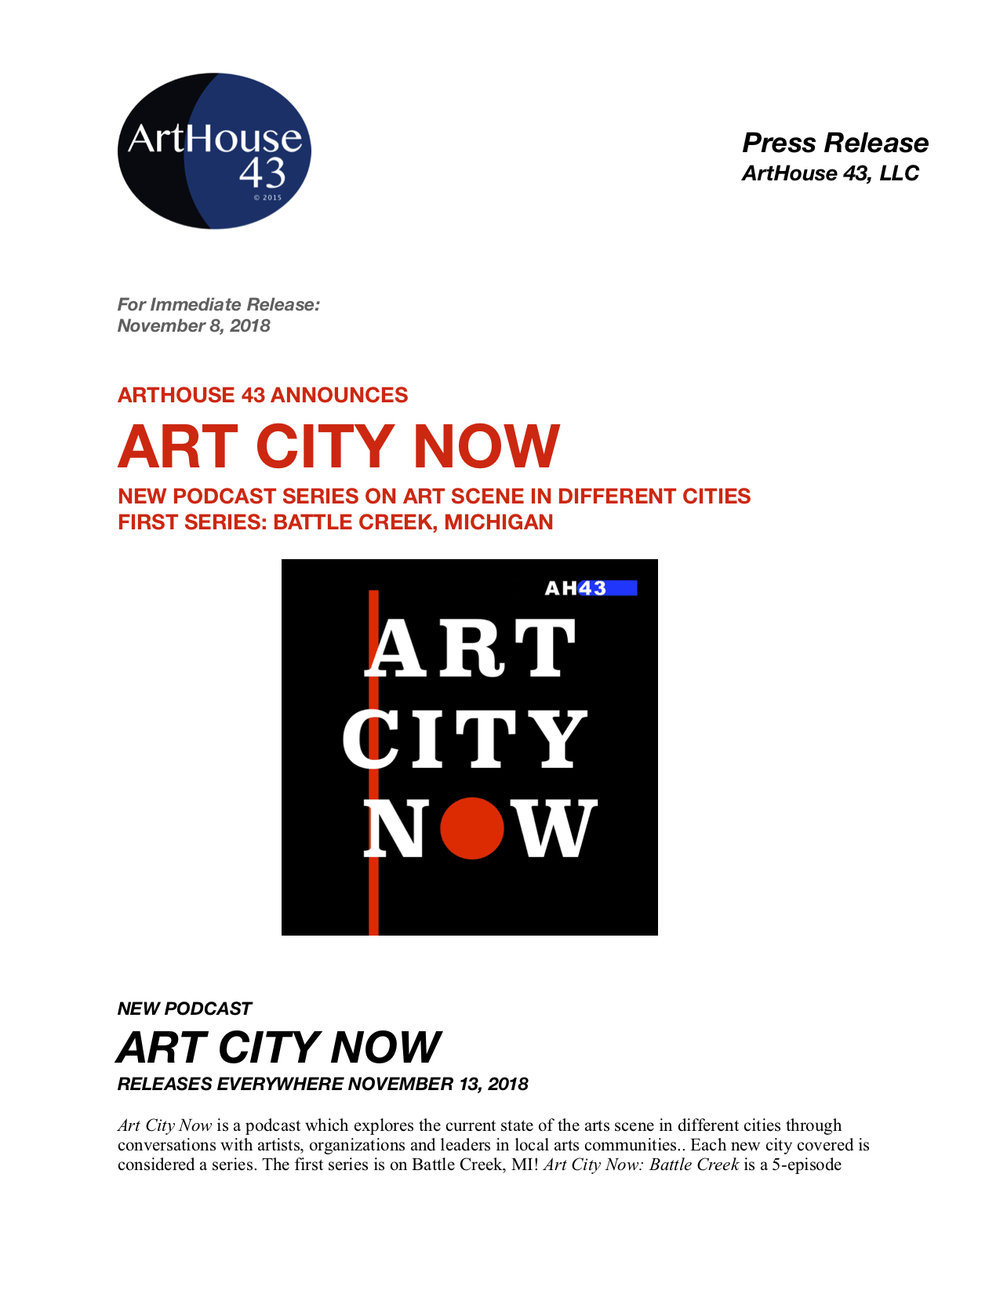 Art City Now Official Press Release.jpg